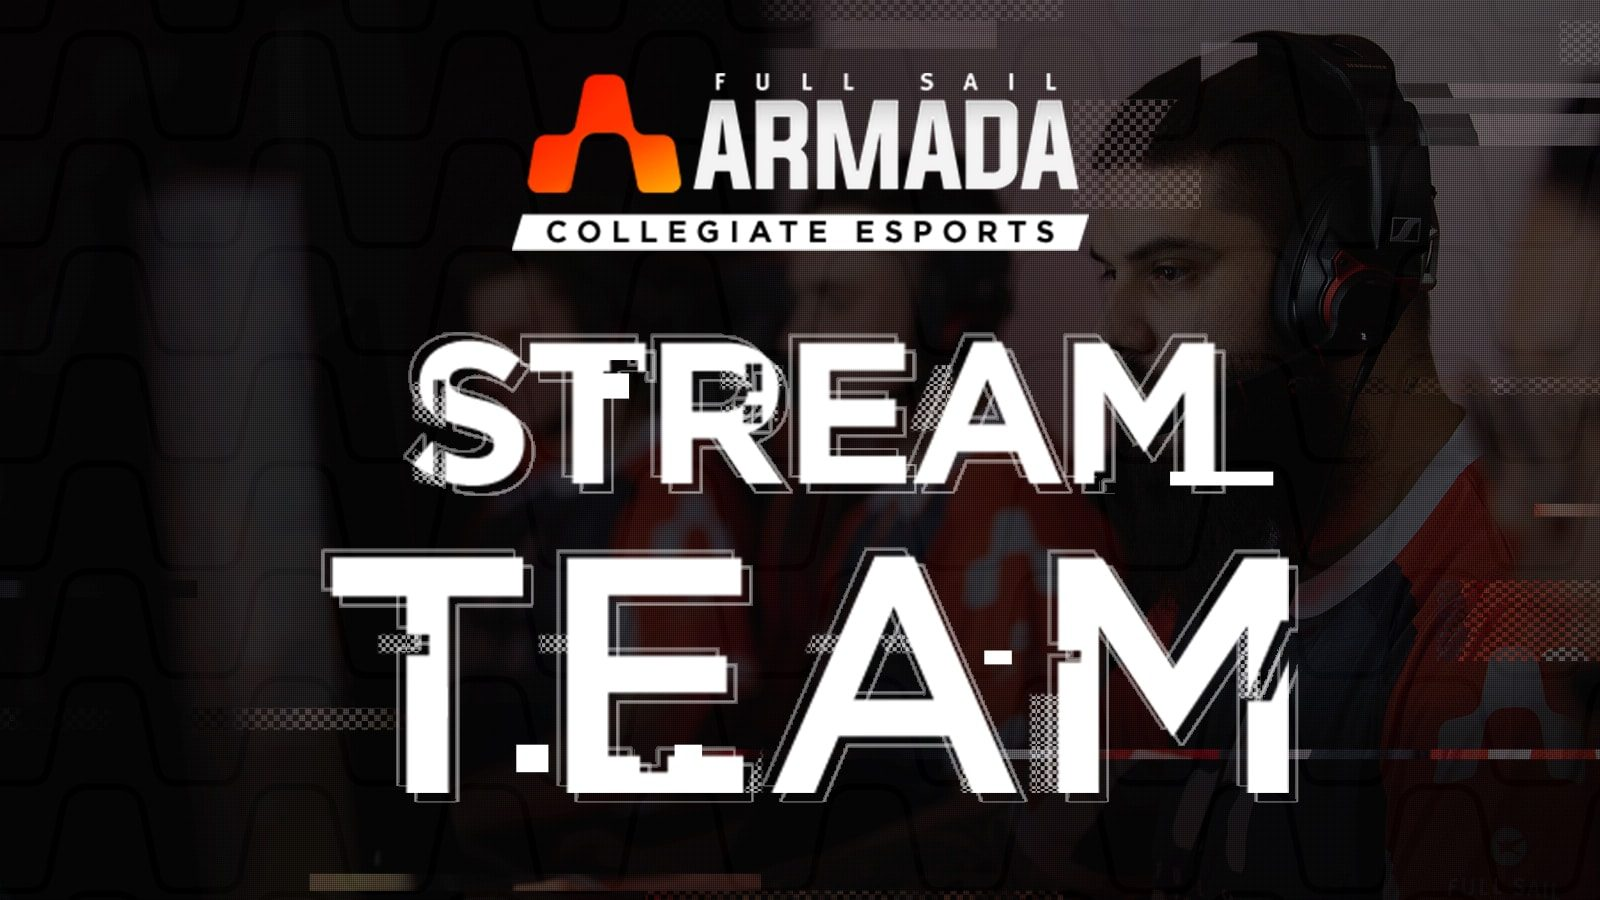 Watch Full Sail Armada athletes play Overwatch, Call of Duty, and more every week on Twitch - Hero image